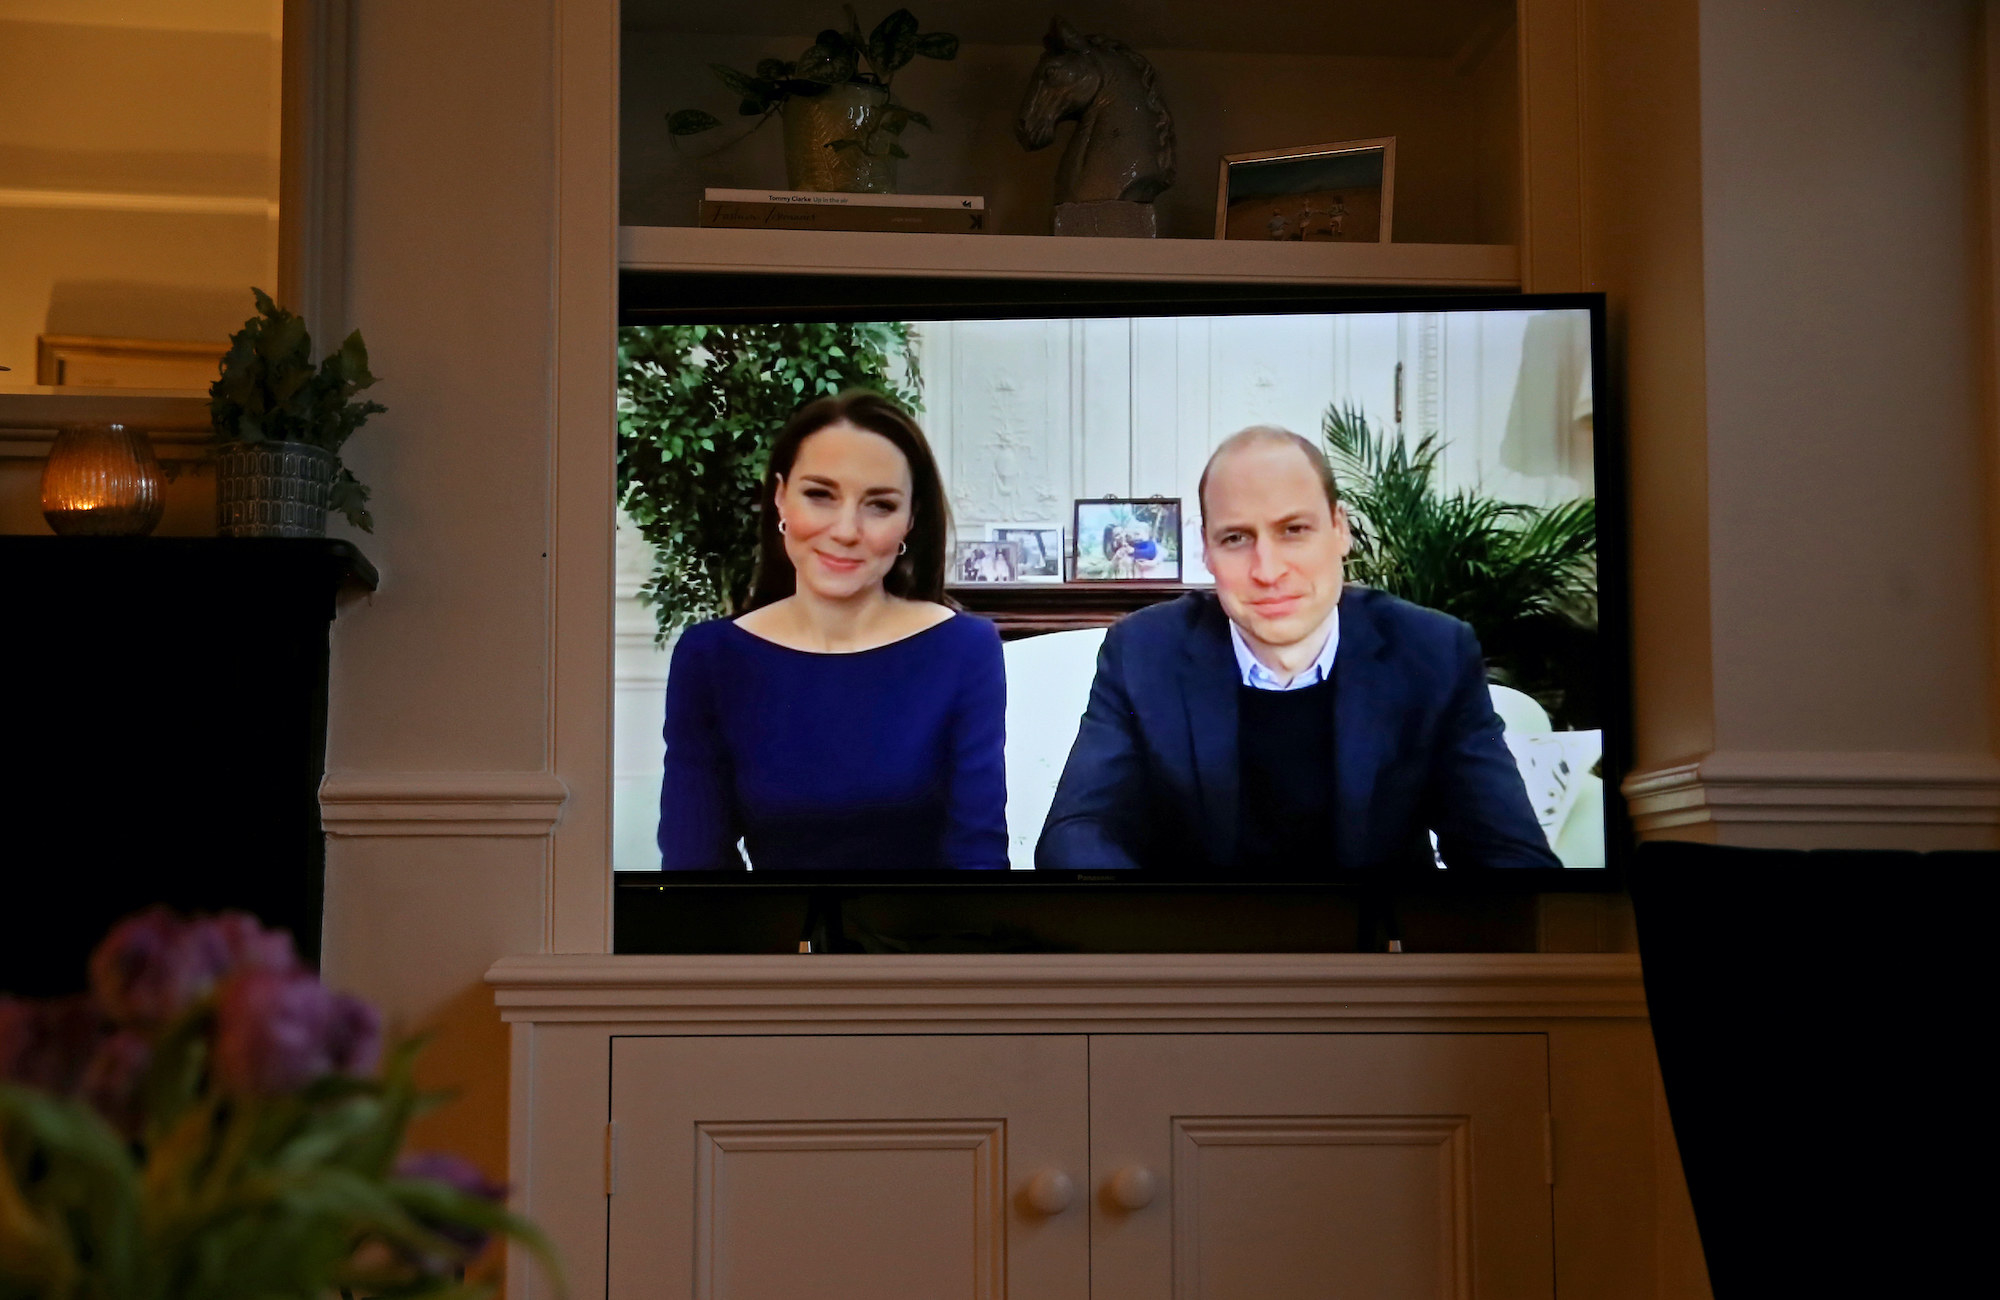 Prince William and Kate Middleton's Commonwealth Day statement on a television